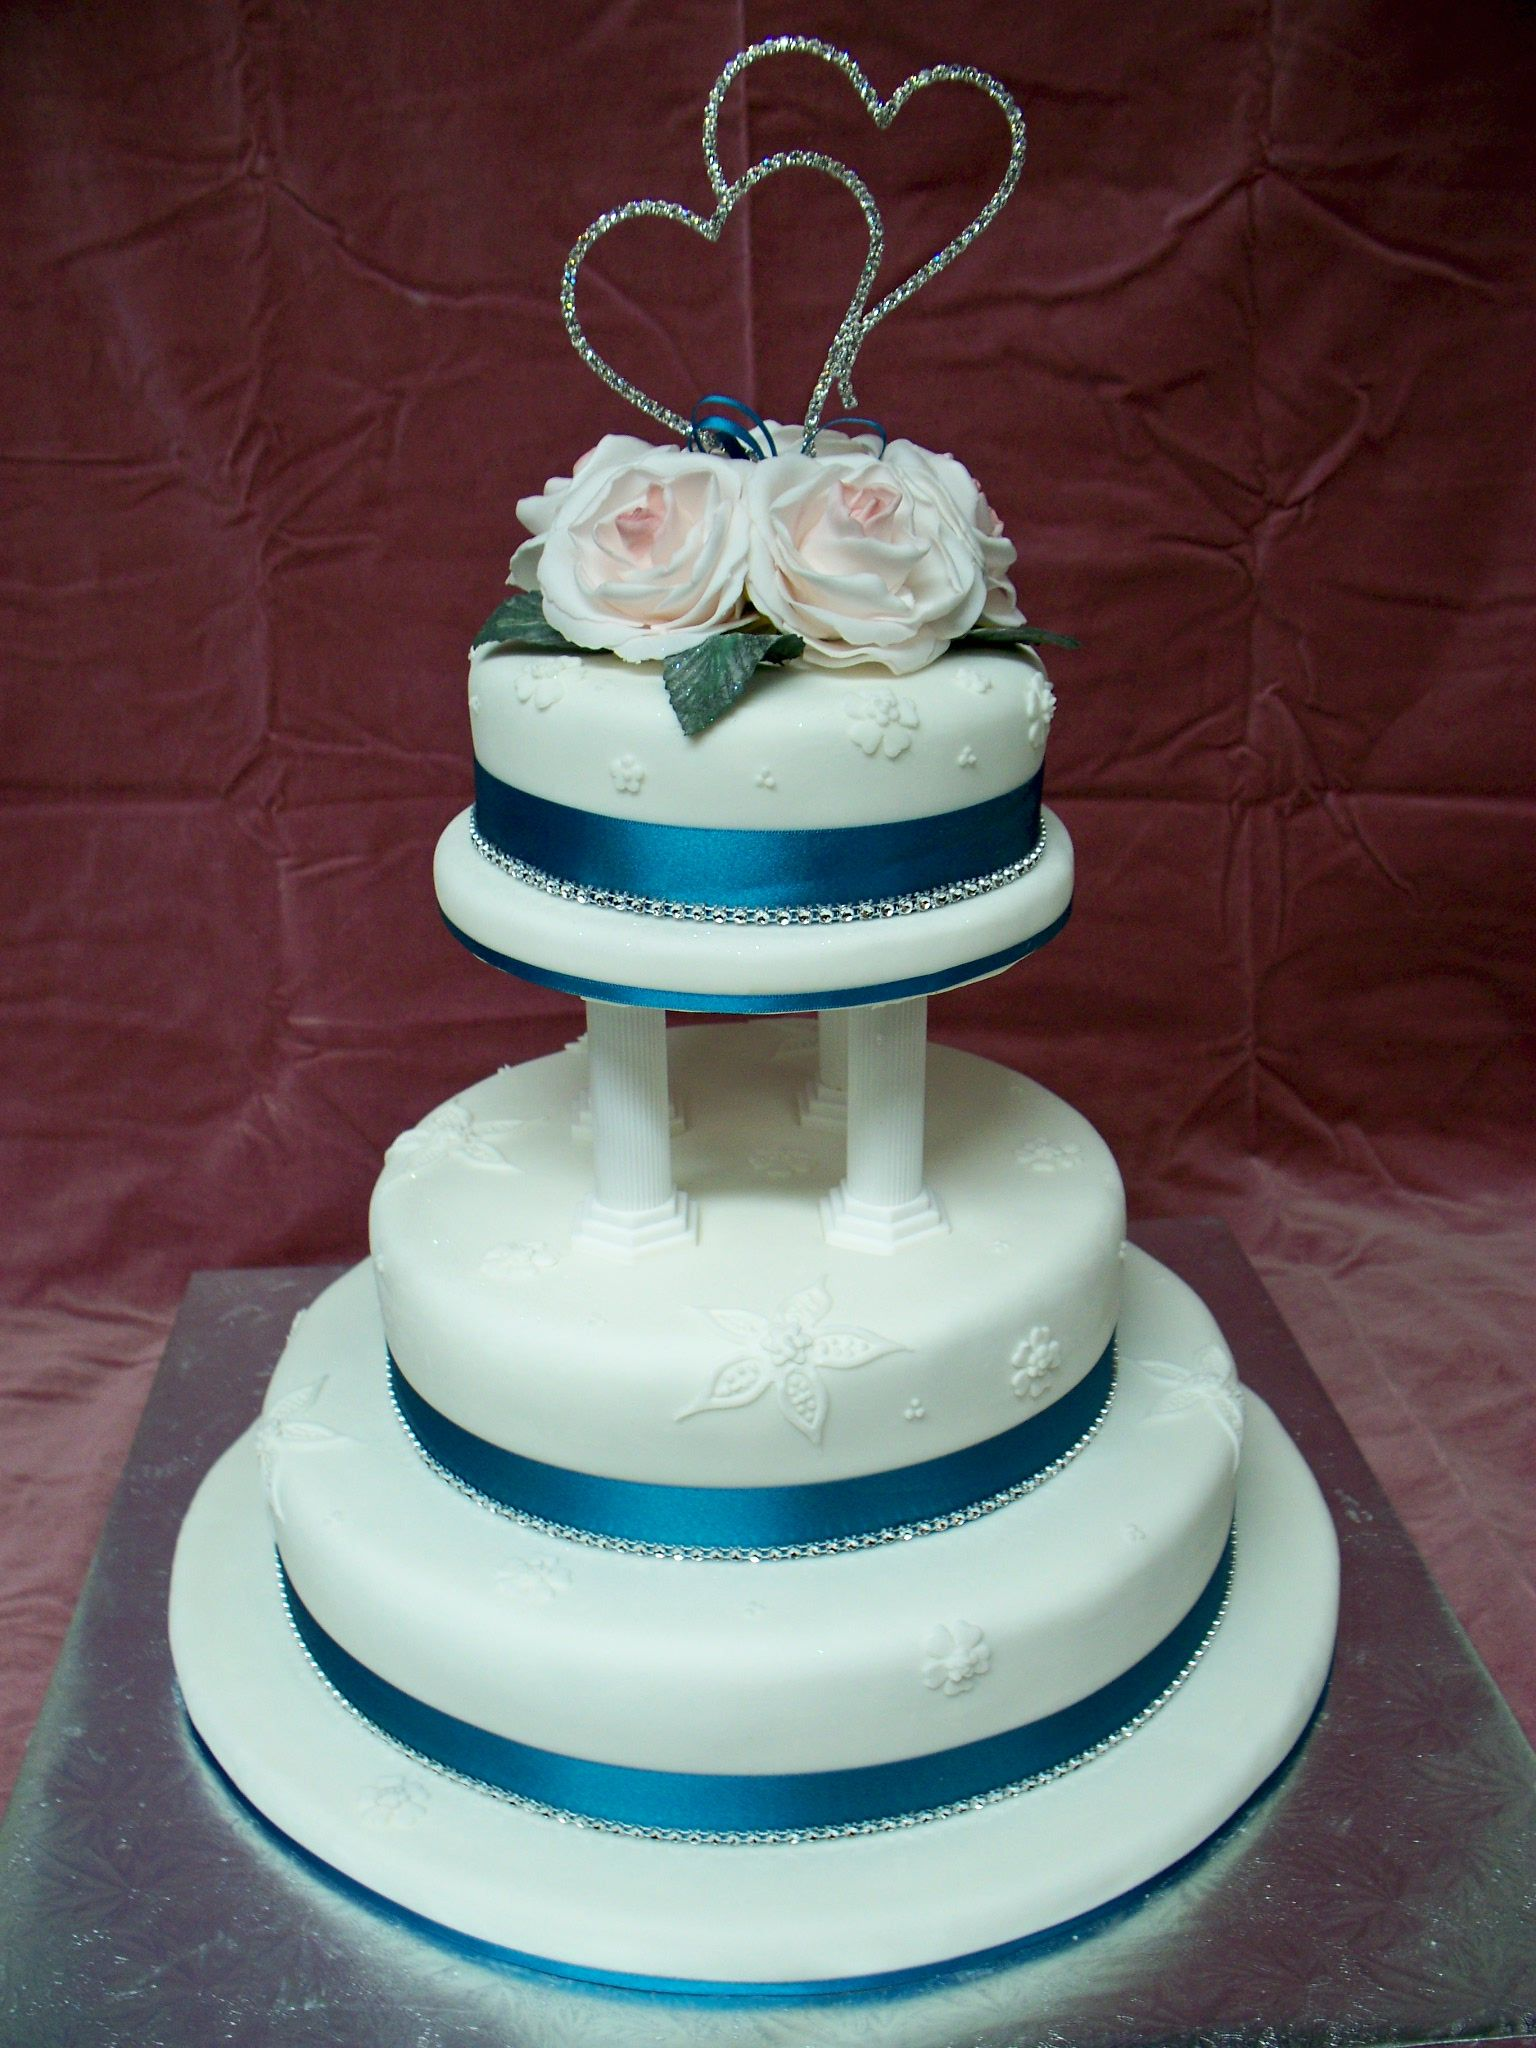 Best Wedding Cakes In Auckland New Zealand Fresco Foods Ltd Www Frescofoods Co